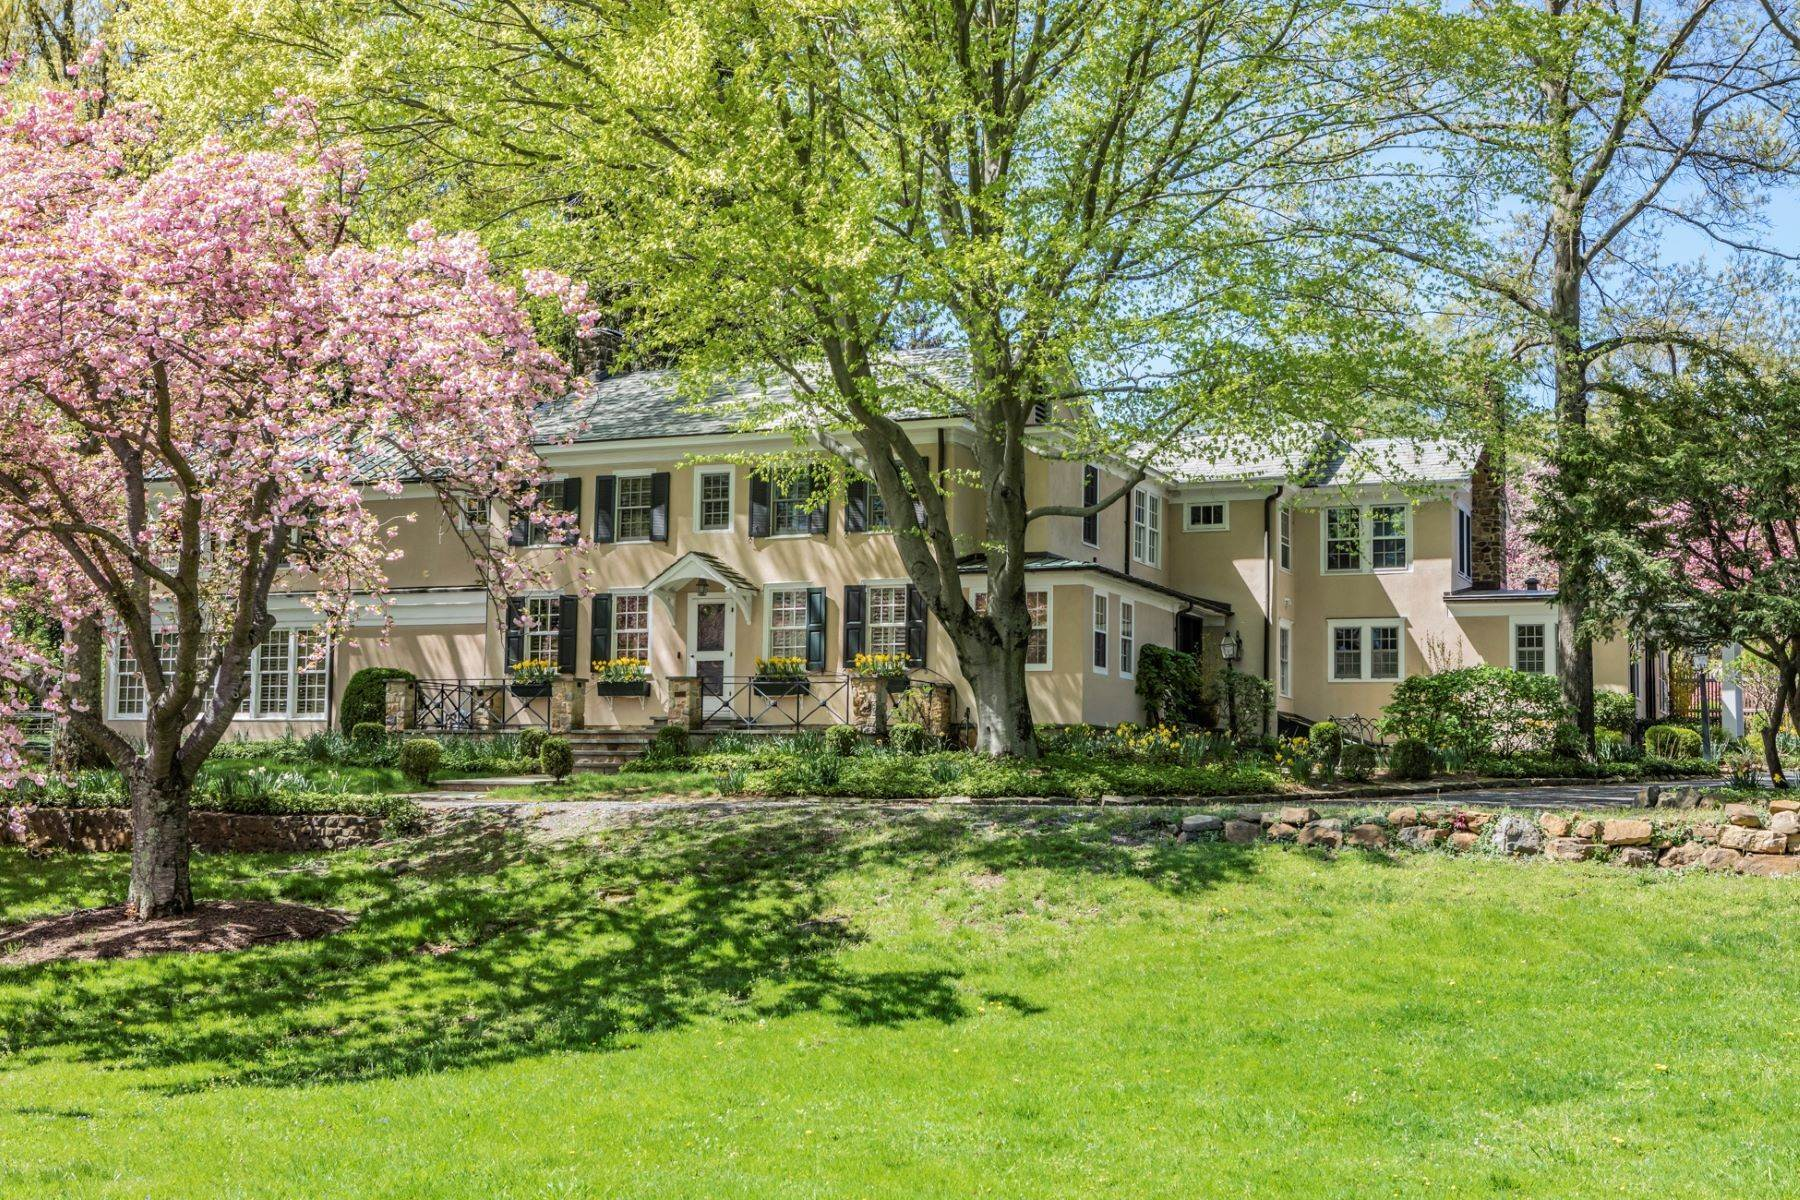 Single Family Homes for Sale at Sophisticated Country-Style Retreat Like No Other 1075 Great Road, Princeton, New Jersey 08540 United States